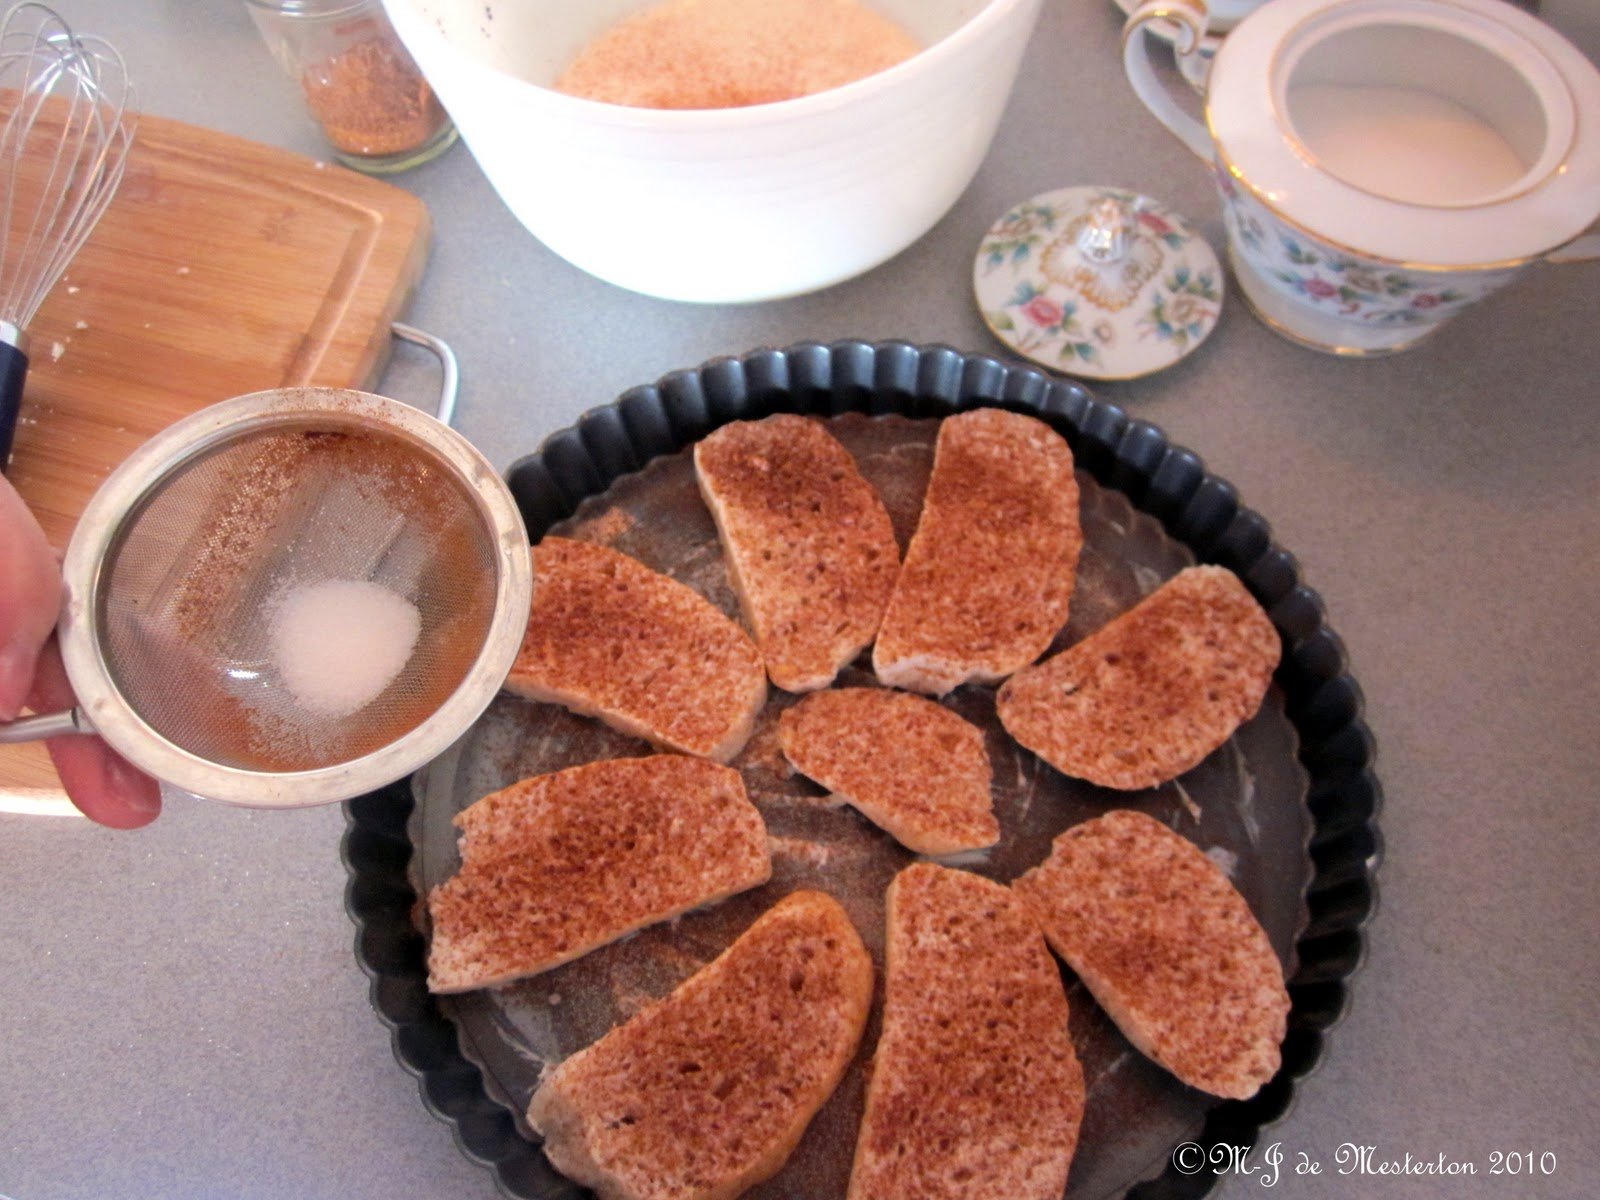 The method and ingredients for making baked cinnamon toast are simple,